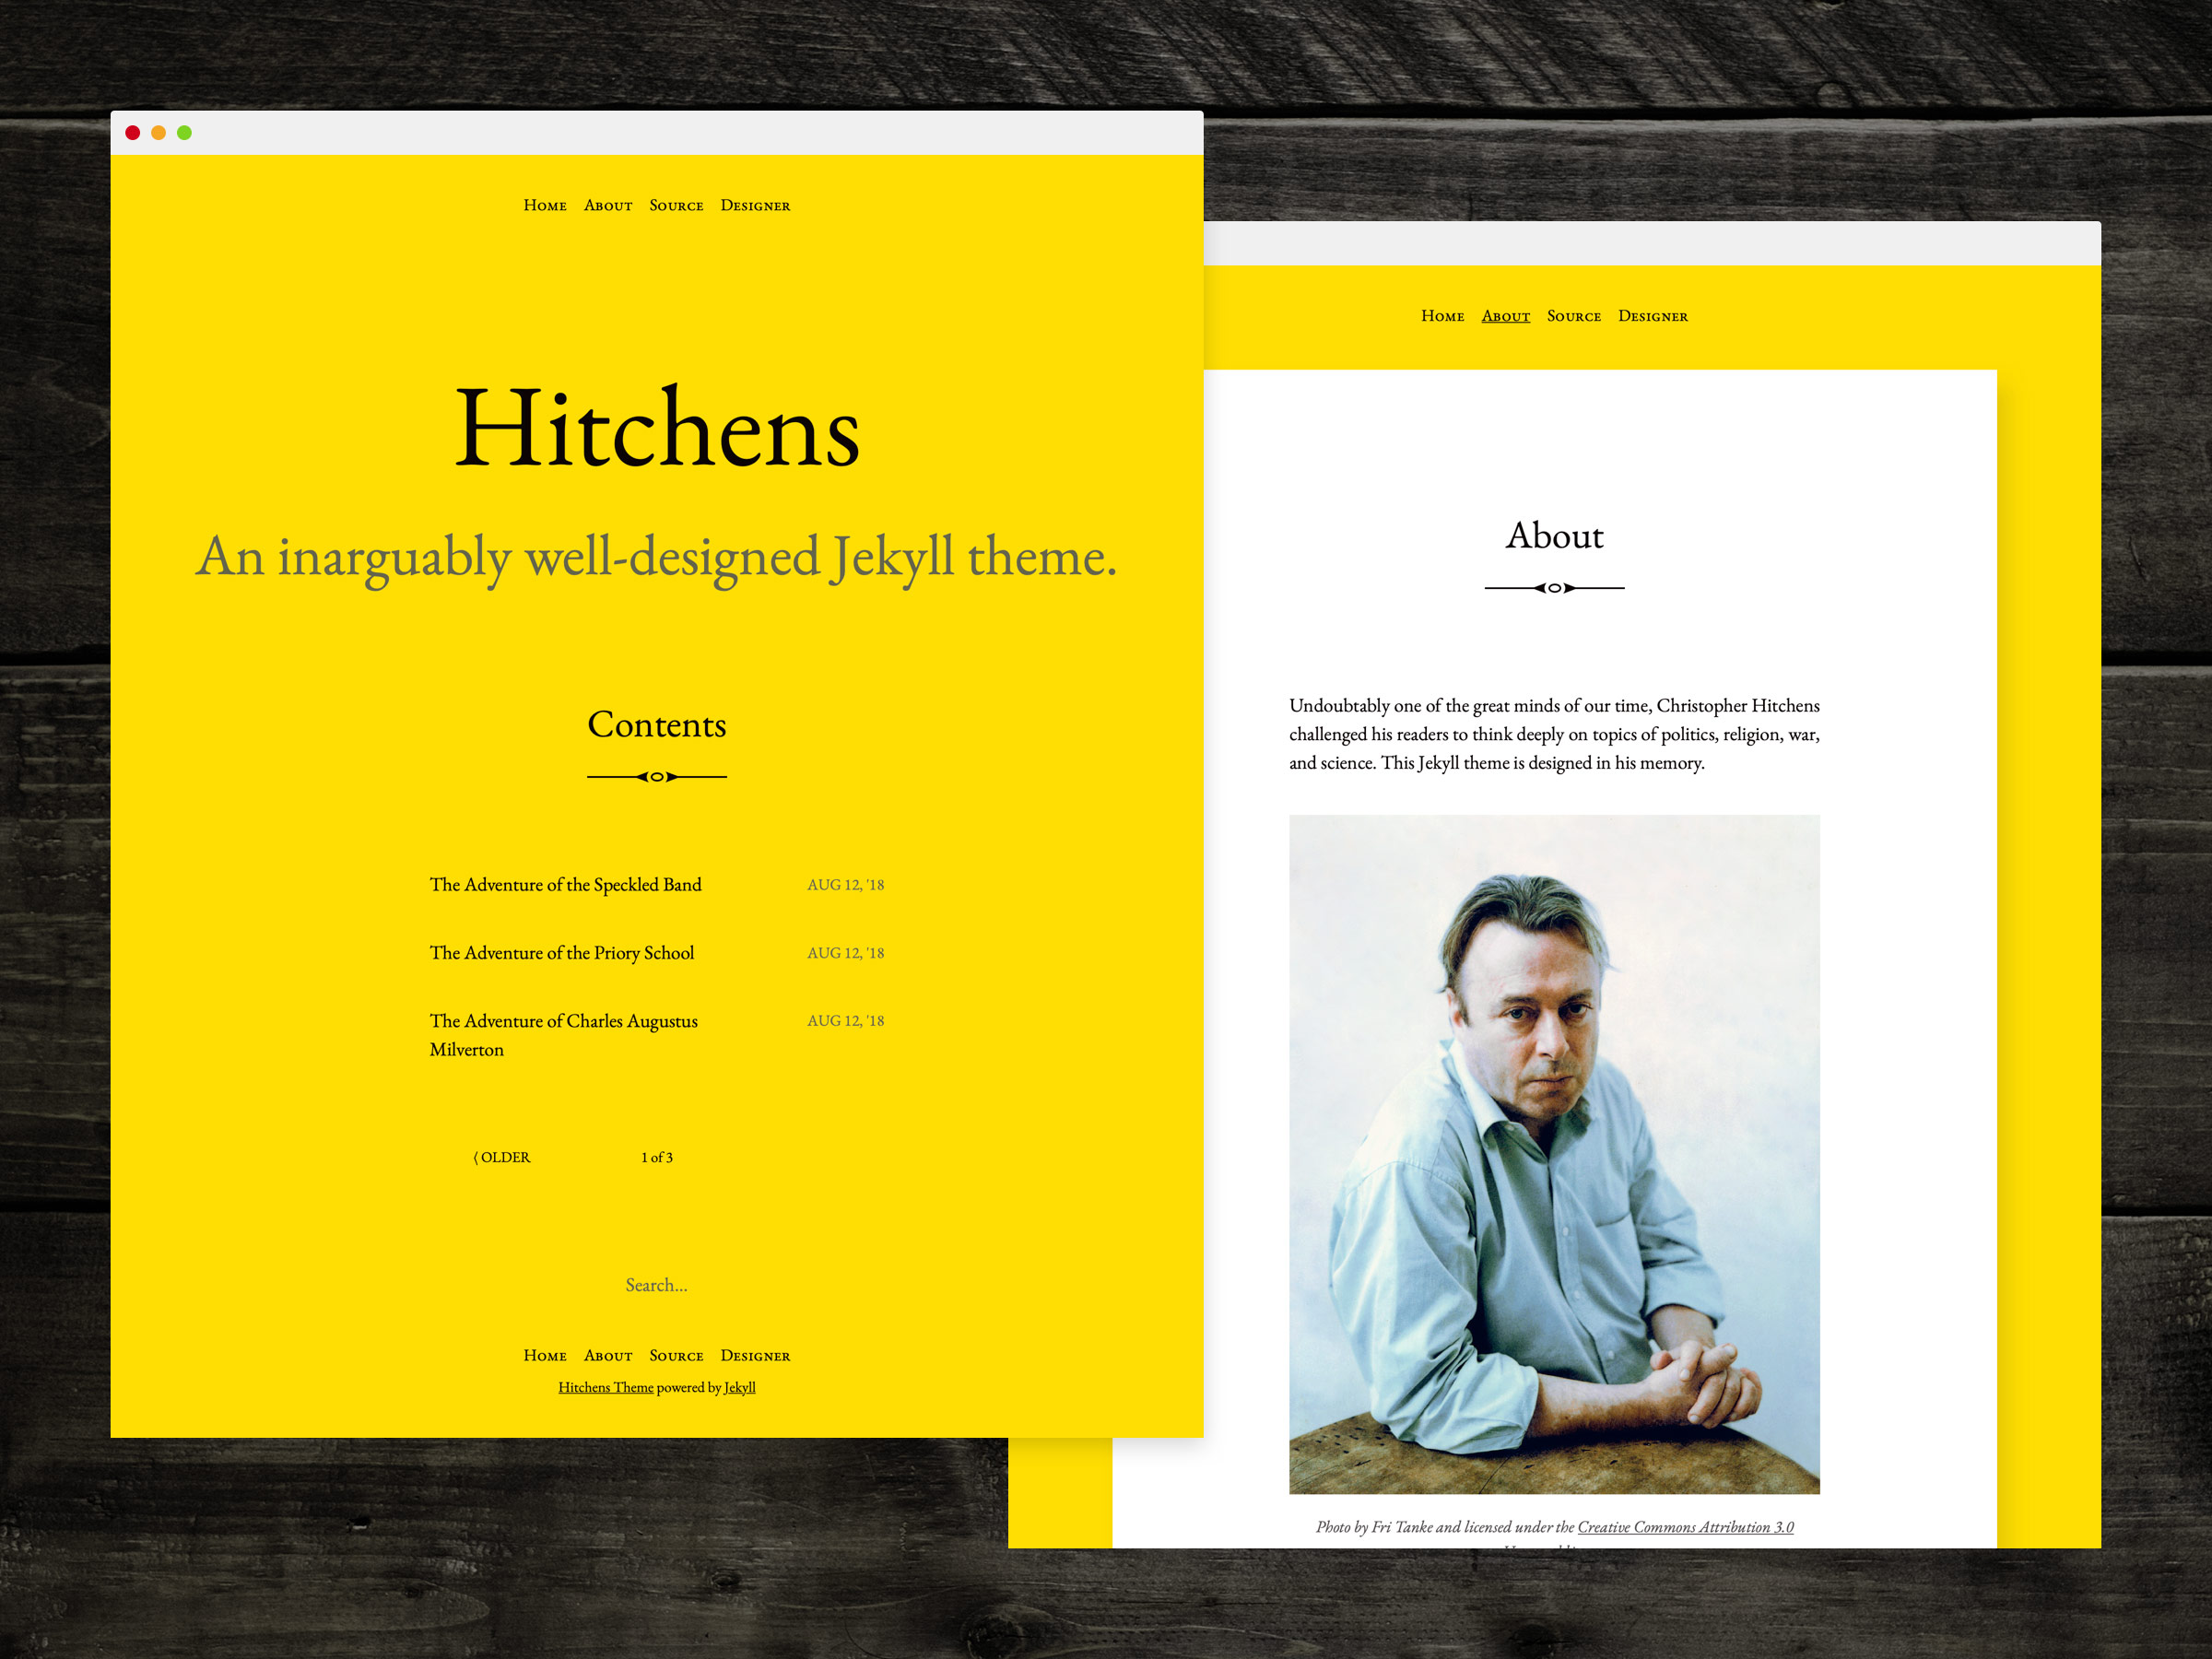 Introducing Hitchens: An inarguably well-designed Jekyll theme